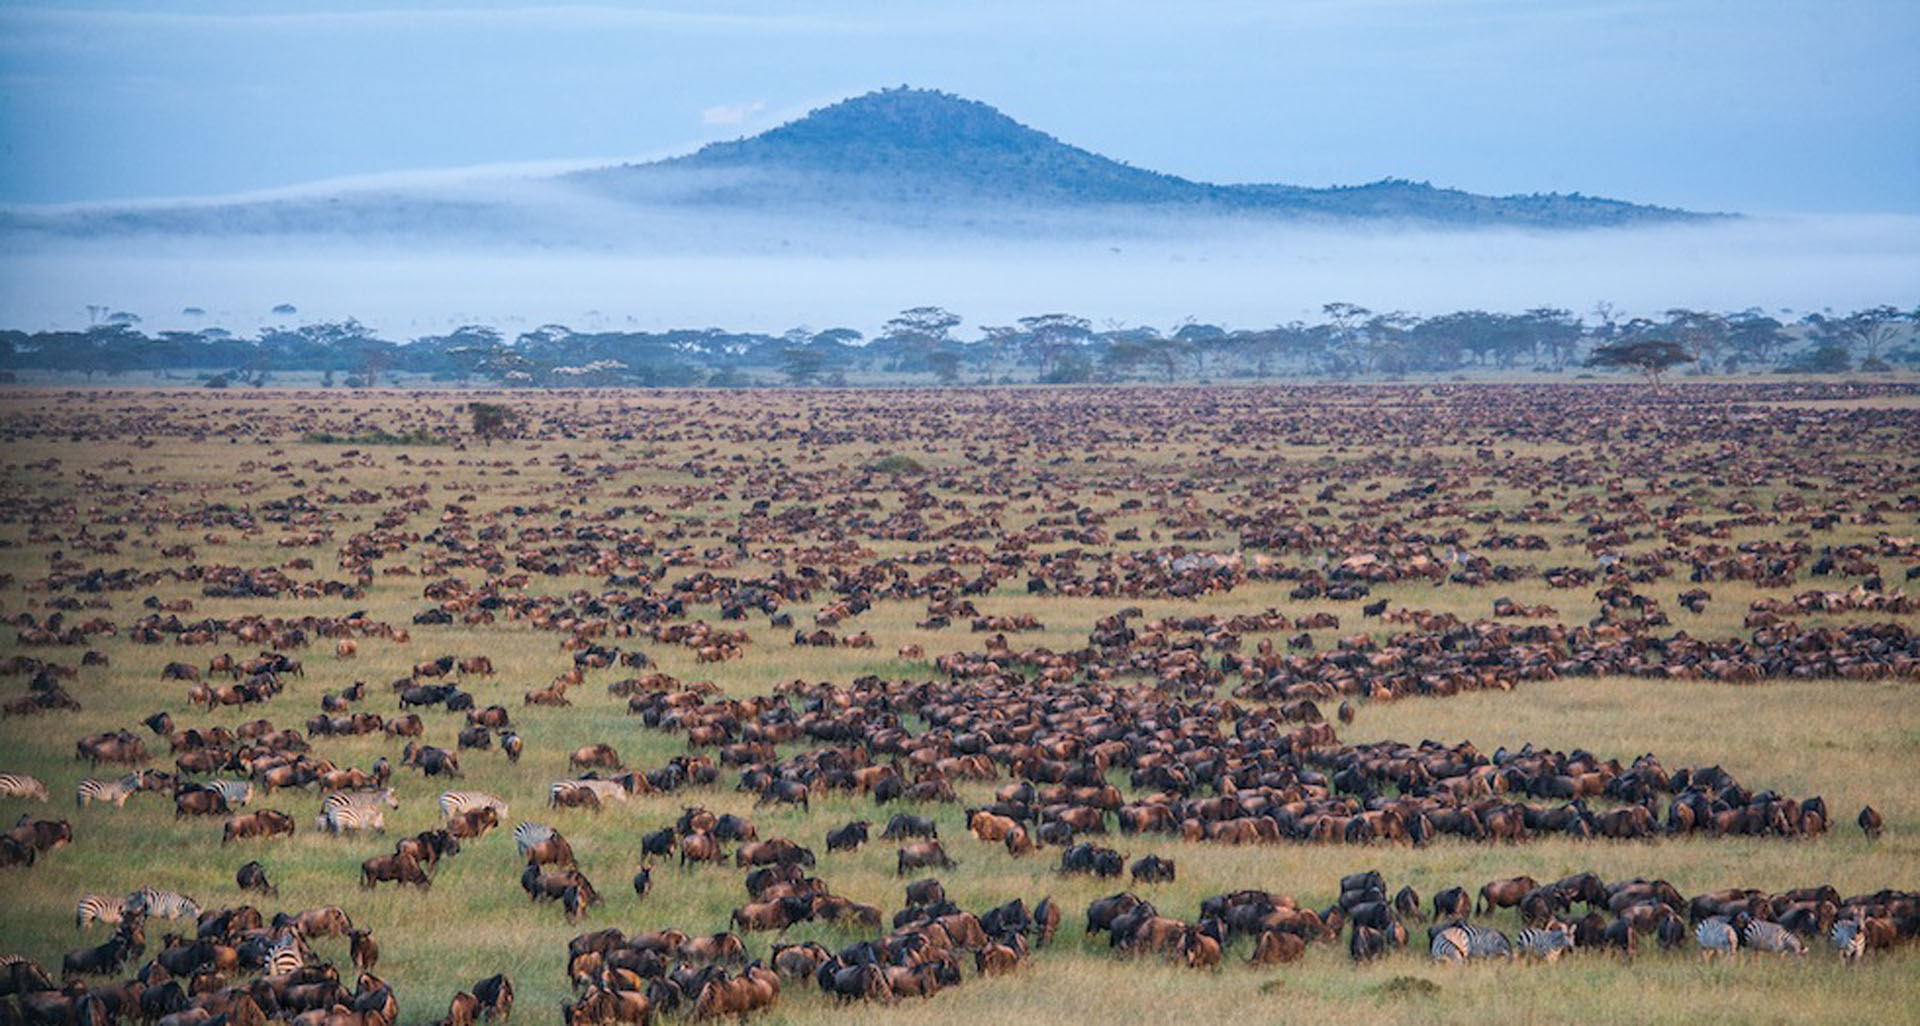 The Serengeti Migration, nature at its best